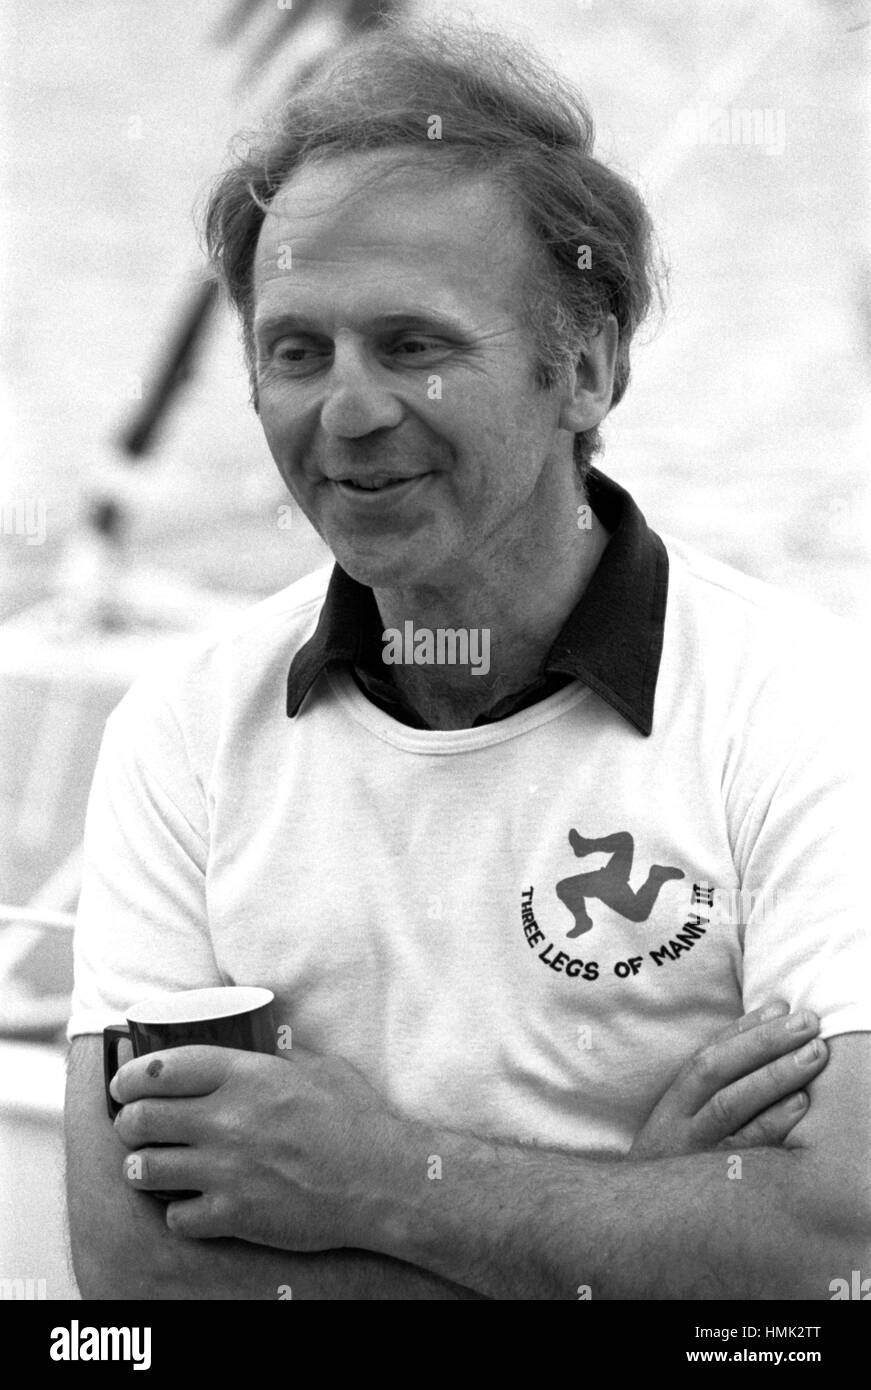 AJAXNETPHOTO. 6TH JUNE, 1980. PLYMOUTH, ENGLAND. - OSTAR 1980 - THREE LEGS OF MANN III SKIPPER NICK KEIG (UK). HIS - Stock Image